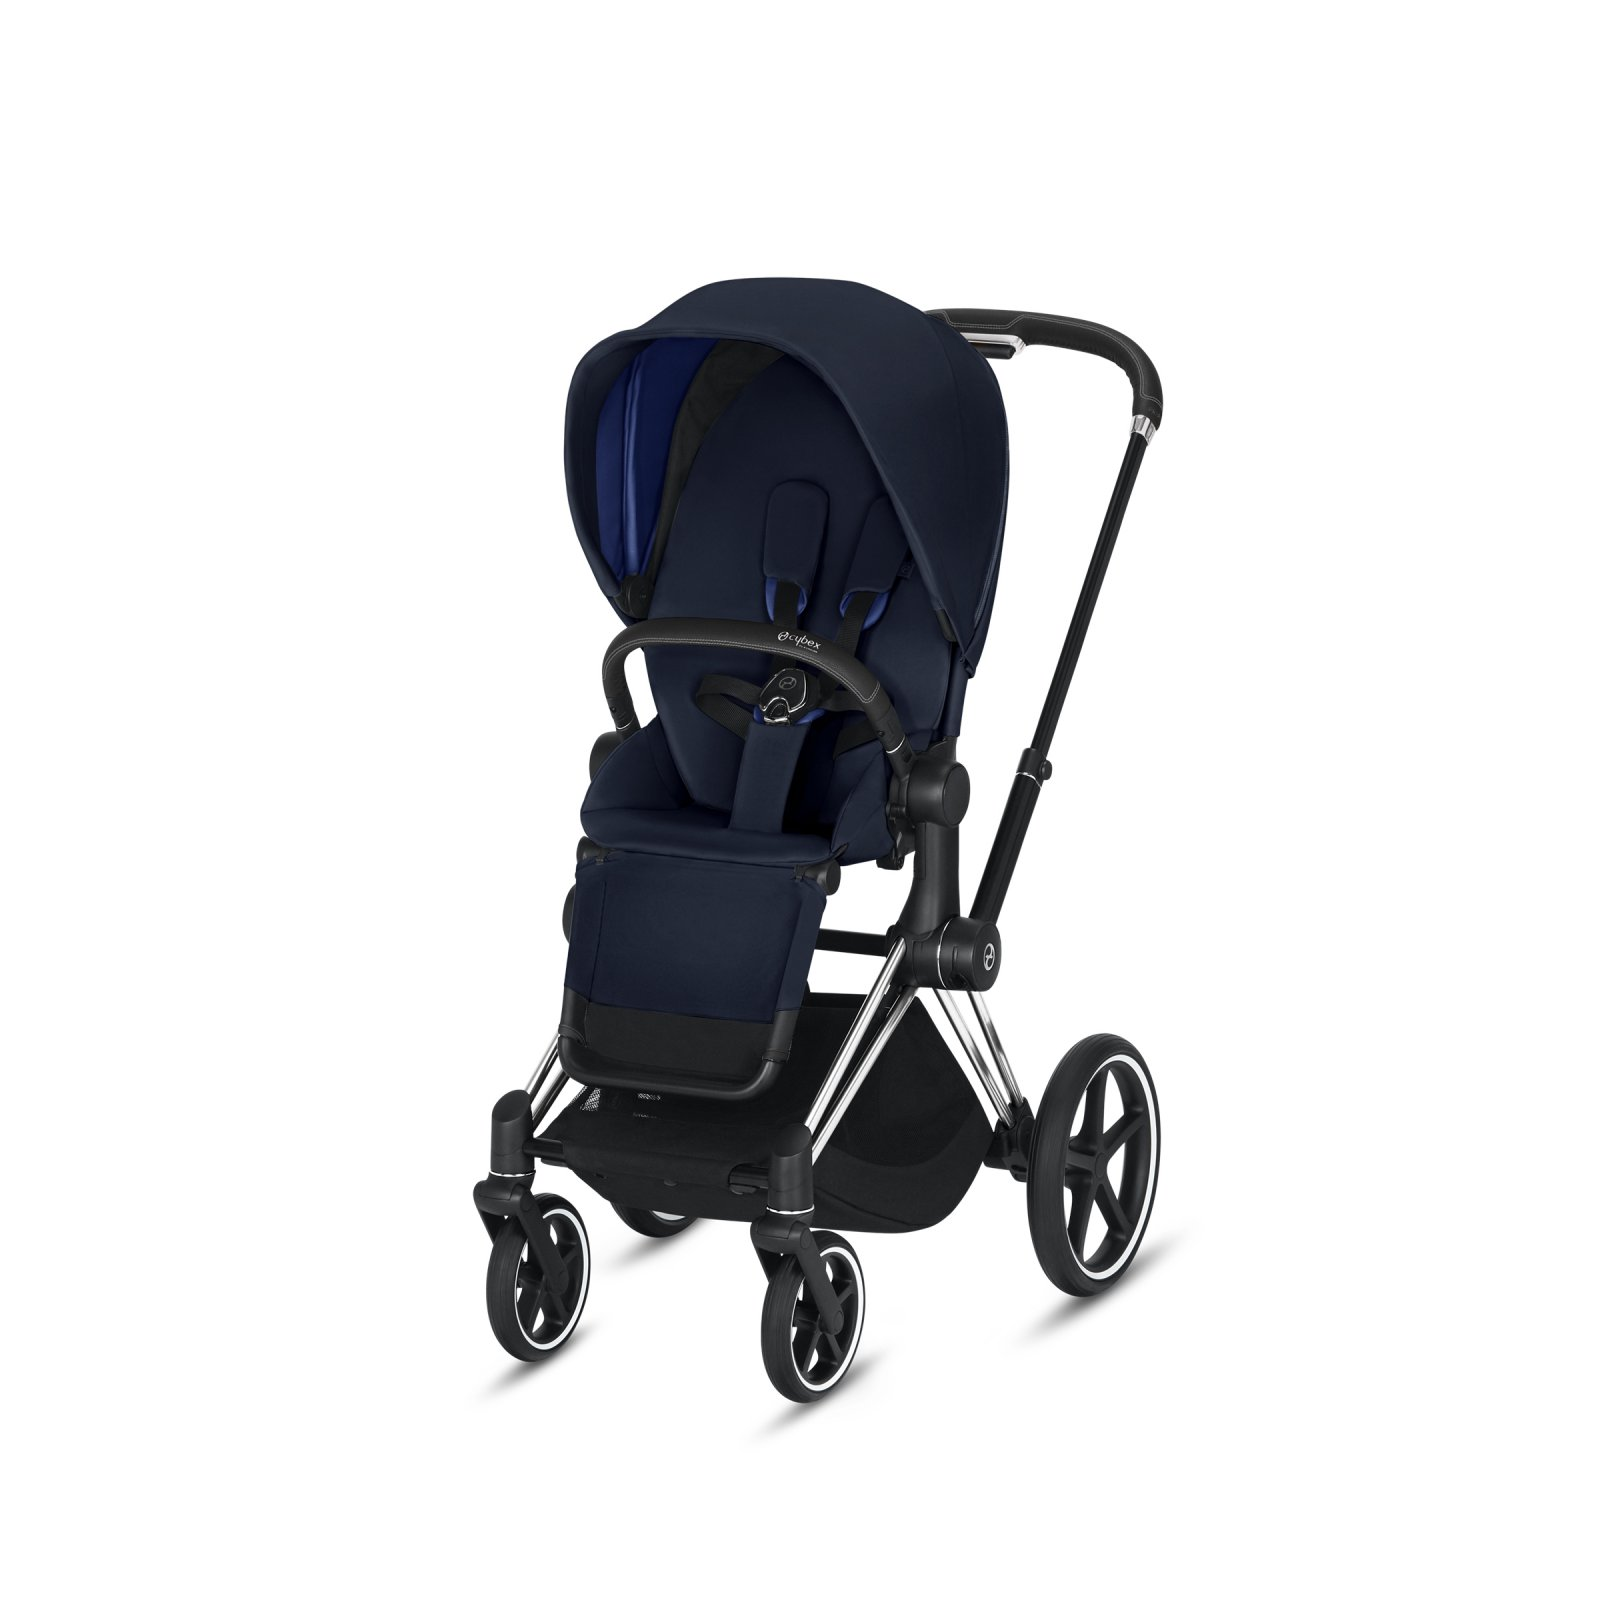 Cybex Priam Chrome/Black Frame with Indigo Blue Seat Pack